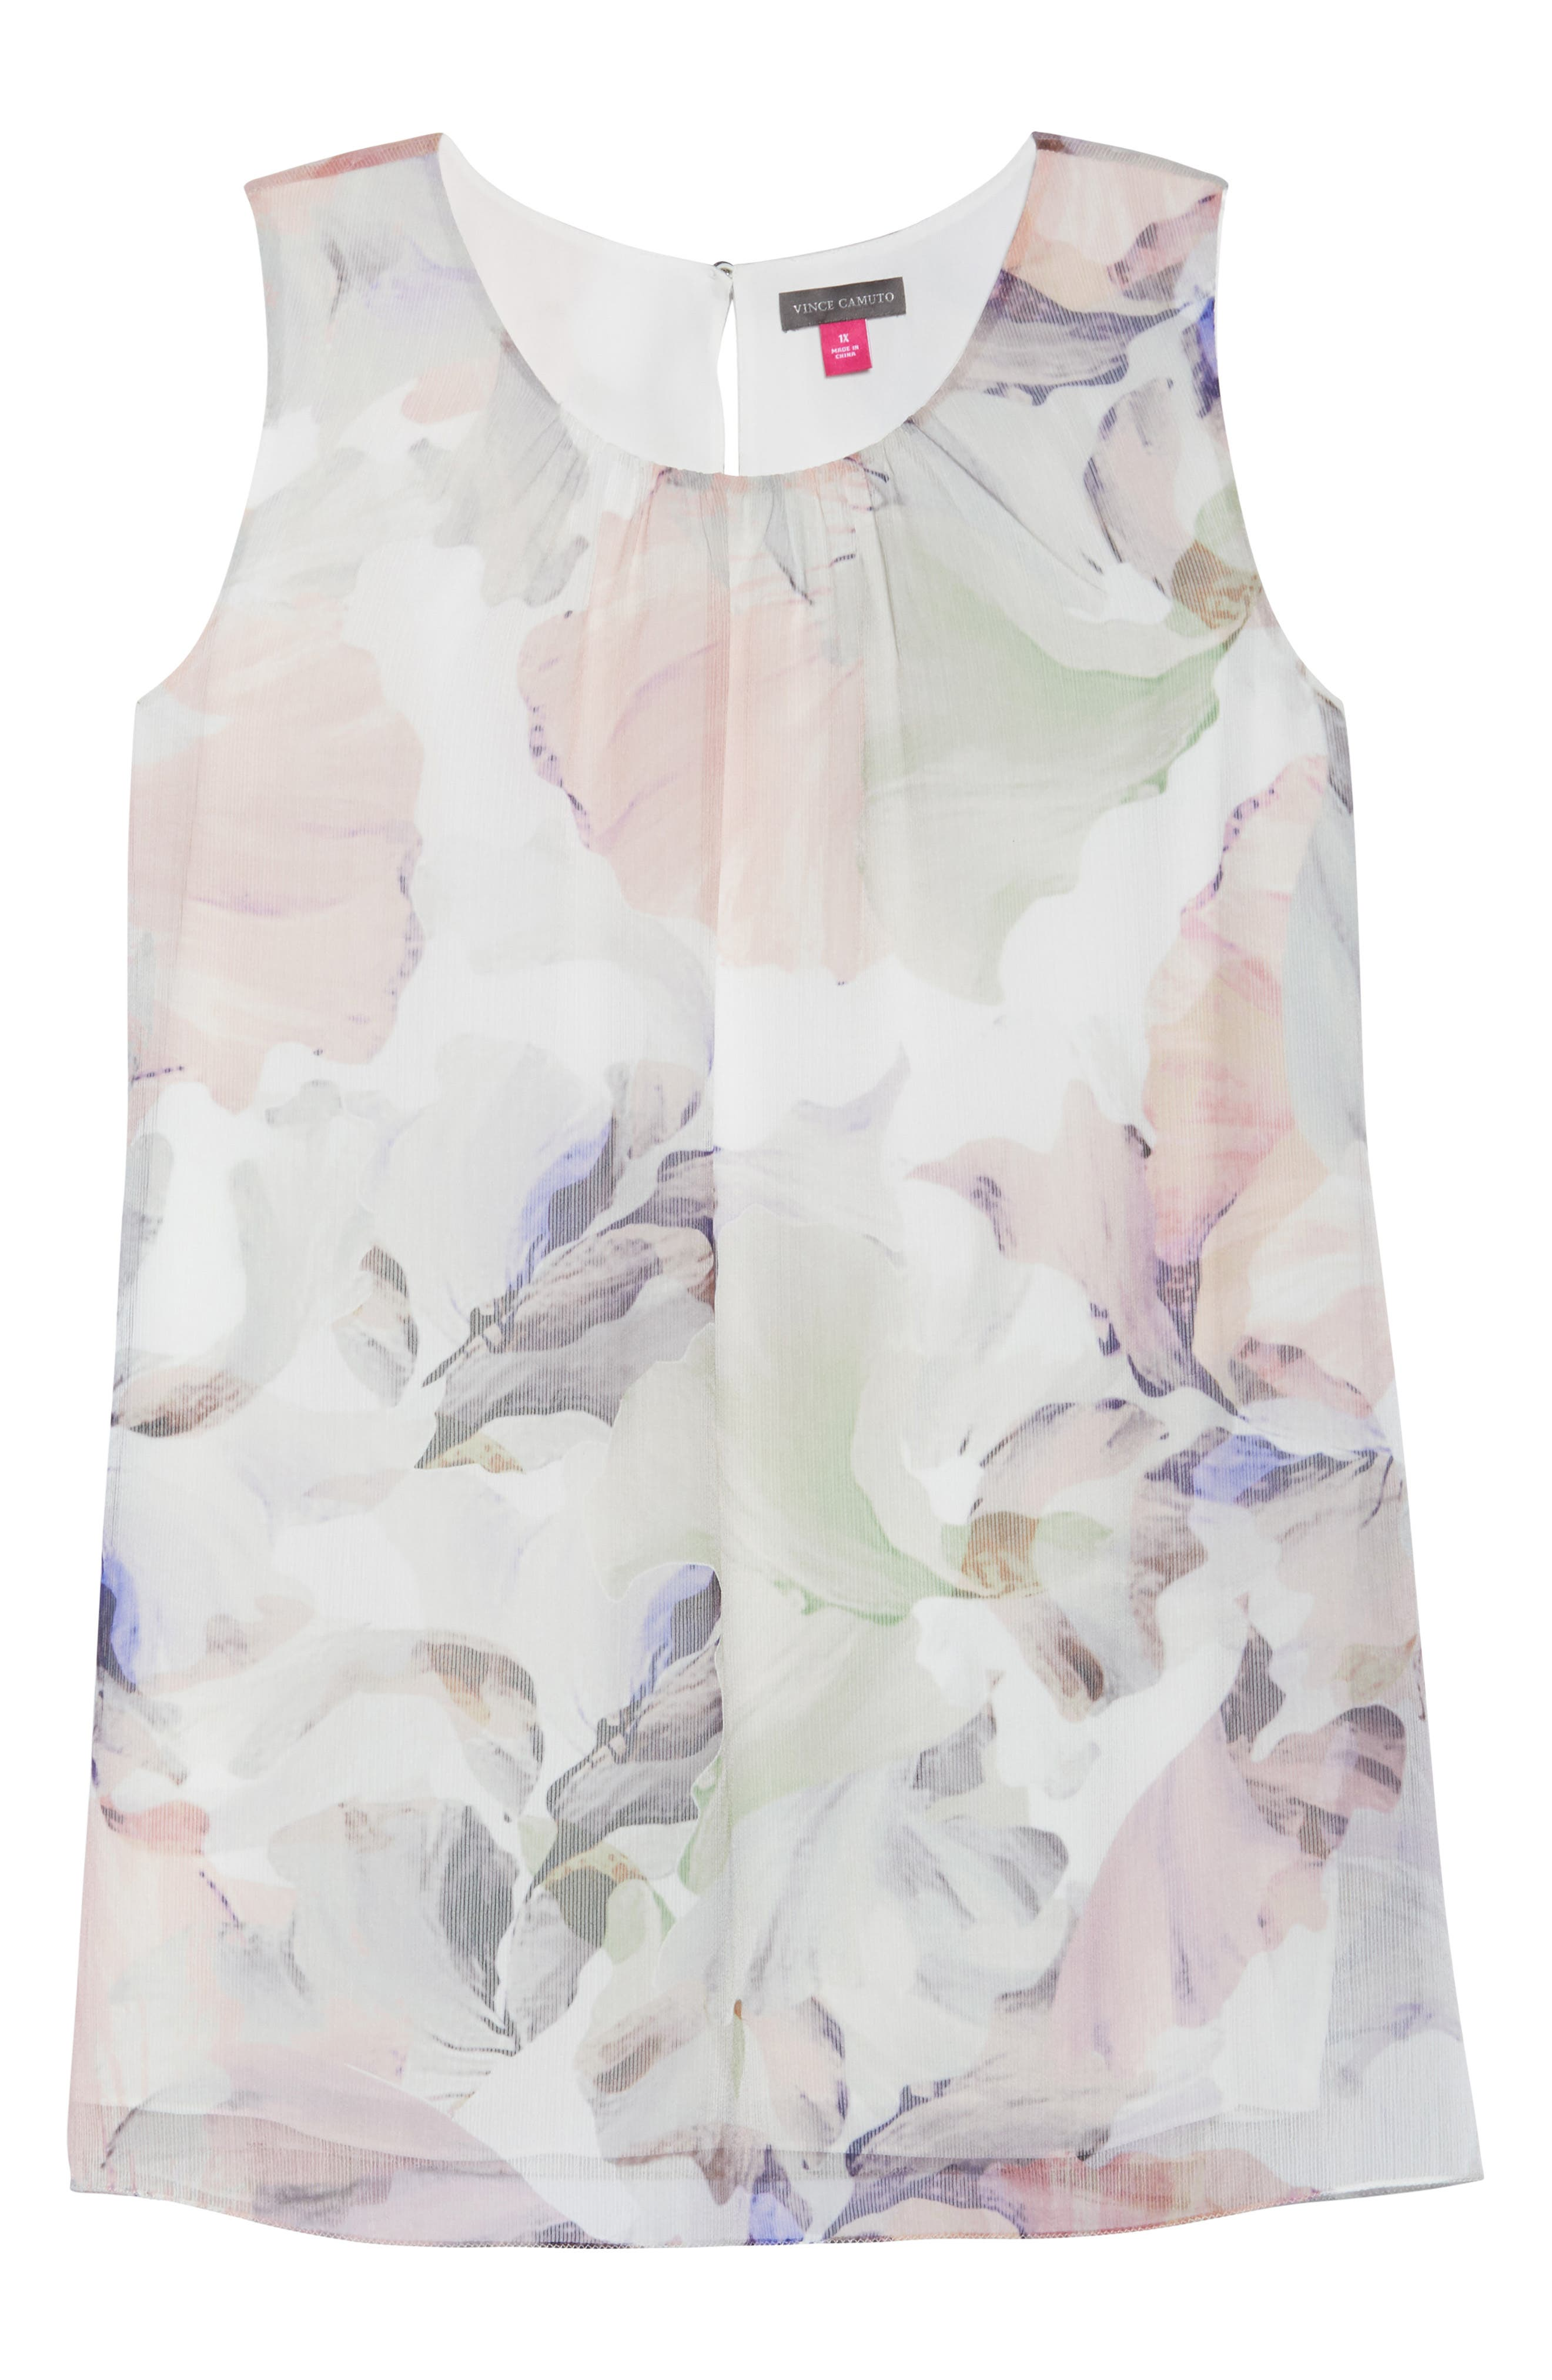 VINCE CAMUTO,                             Diffused Blooms Blouse,                             Alternate thumbnail 7, color,                             903